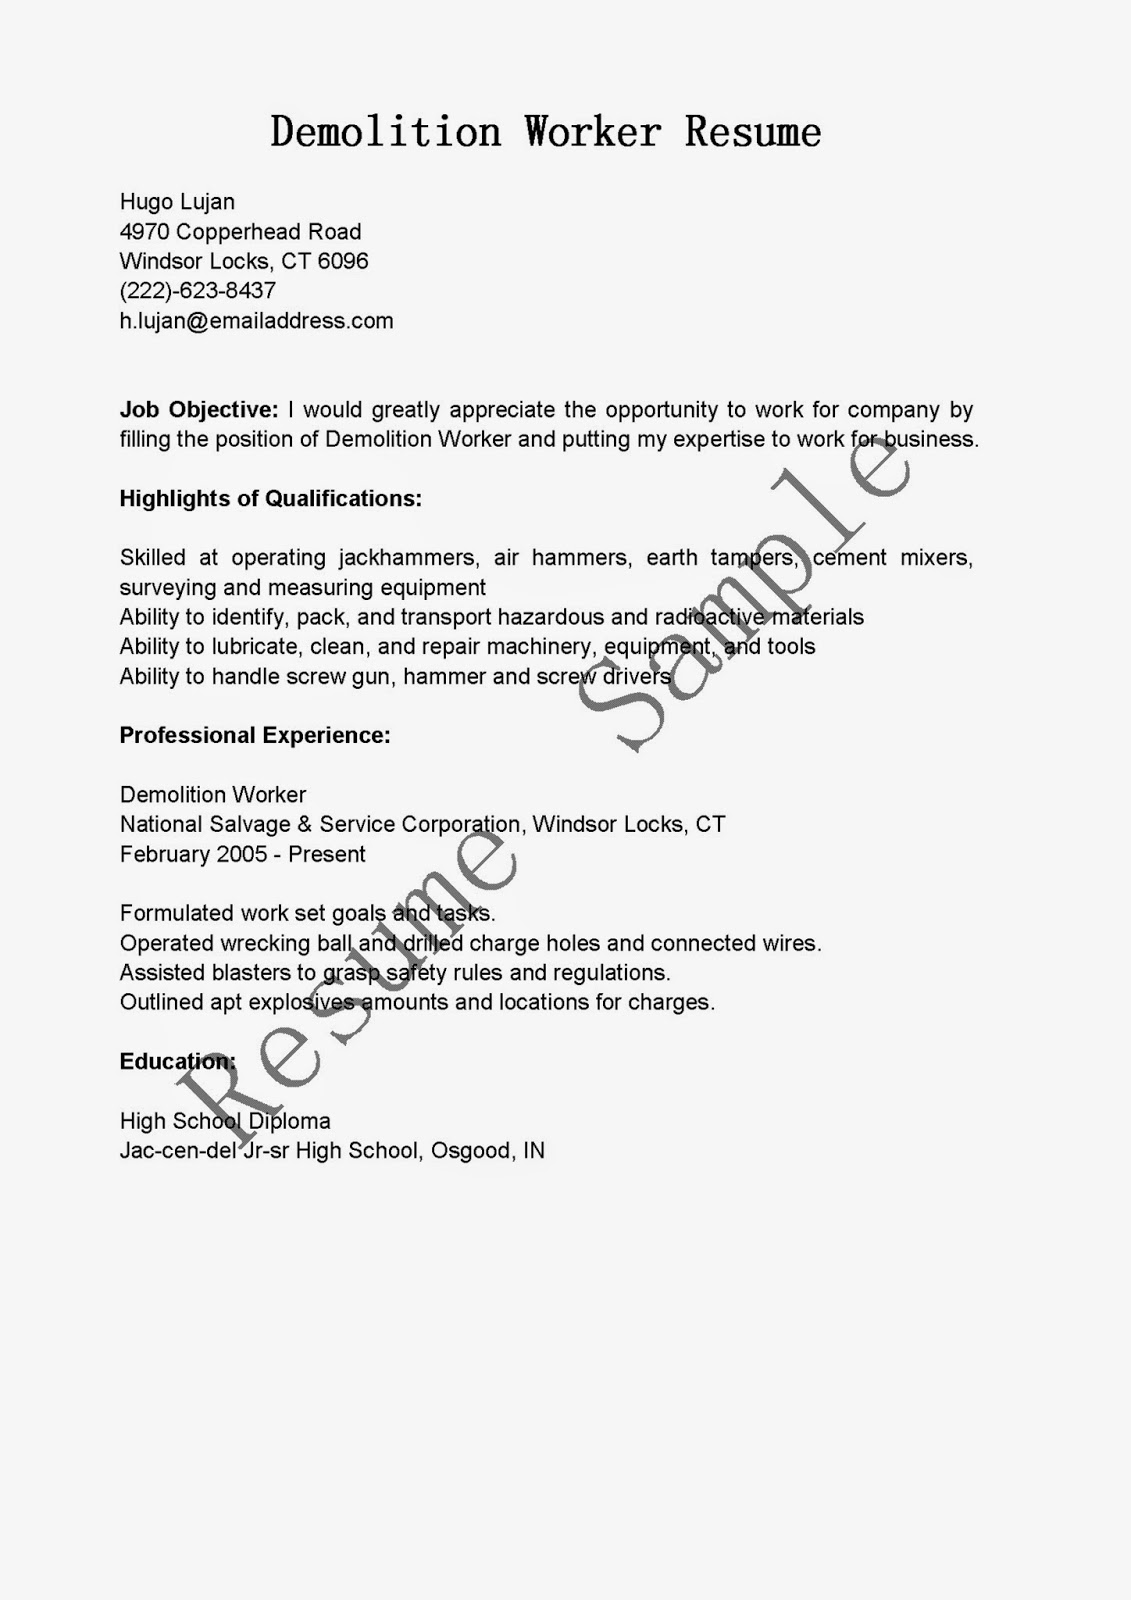 resume sles demolition worker resume sle